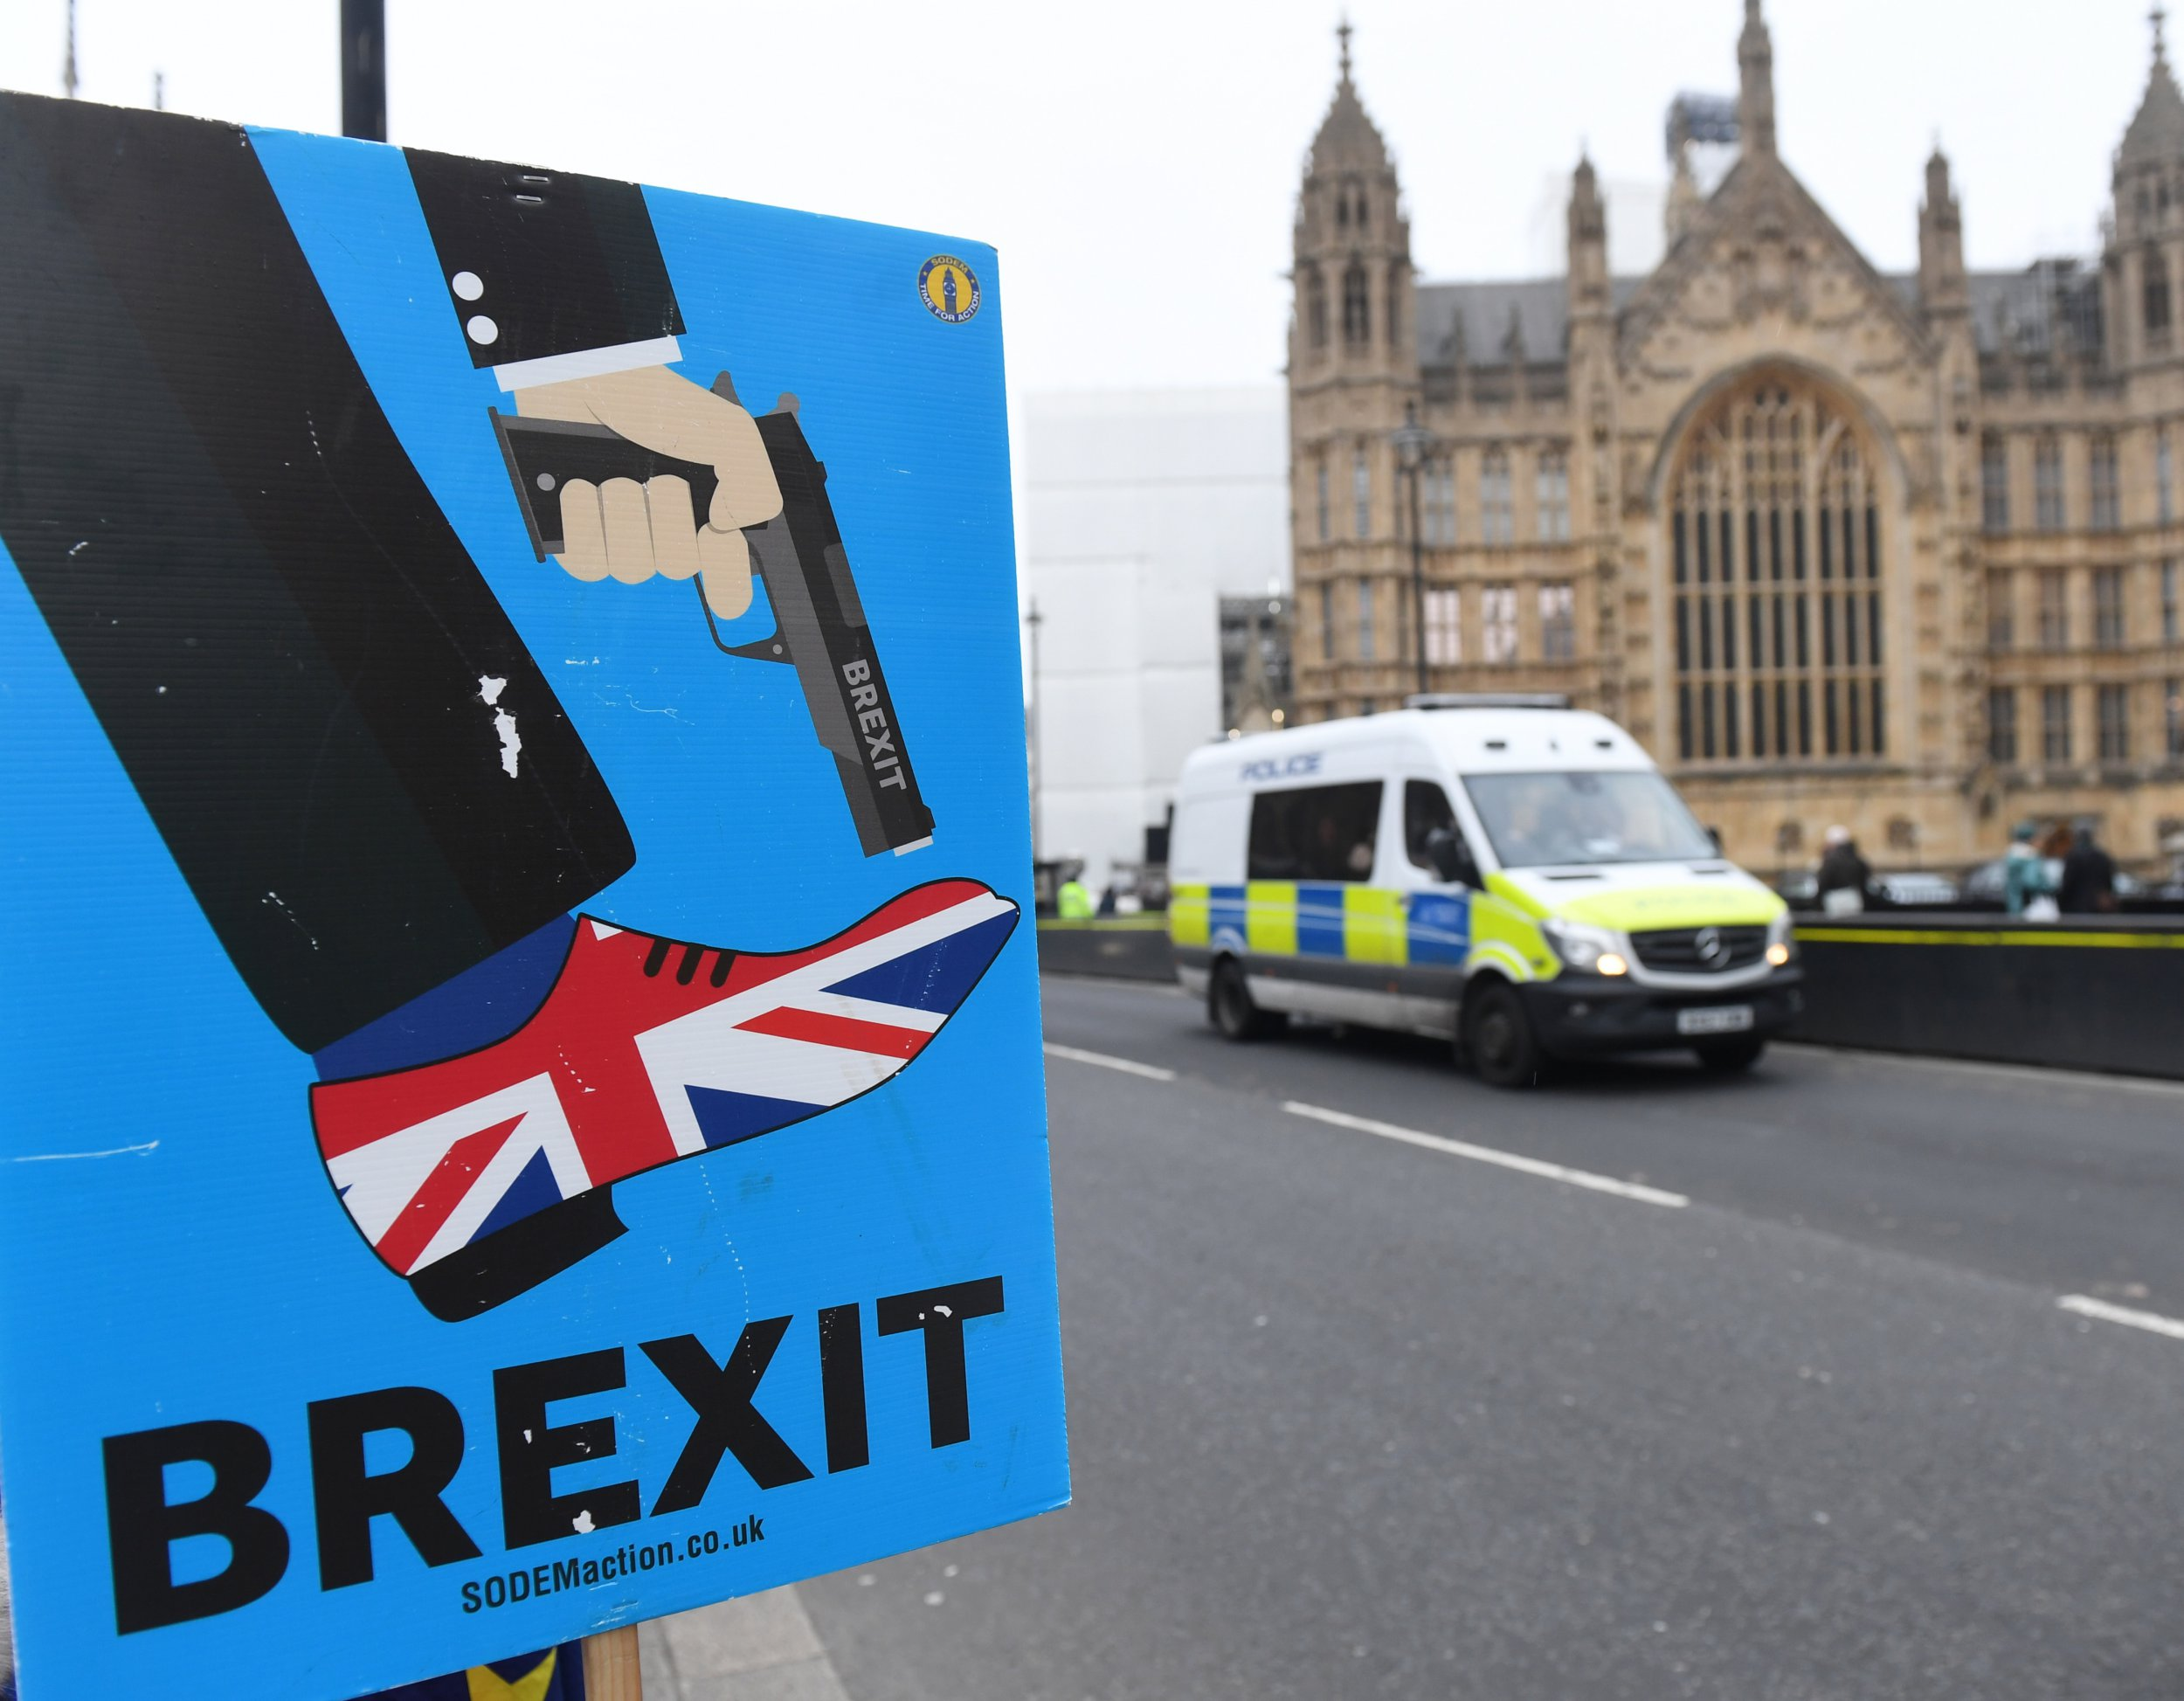 epa07273398 Pro EU supporters display a sign outside the Houses of Parliament in Westminster in London, Britain, 10 January 2019. MPs are debating Theresa May's Brexit plan a month after she postponed the original commons vote. Media reports state that Labour leader Jeremy Corbyn has confirmed his party members will vote against Prime Minister's May Brexit agreement and his Party will call for a General Election to 'break the deadlock' over Brexit. The meaningful vote on EU withdrawal agreement will be held on 15 January. EPA/FACUNDO ARRIZABALAGA